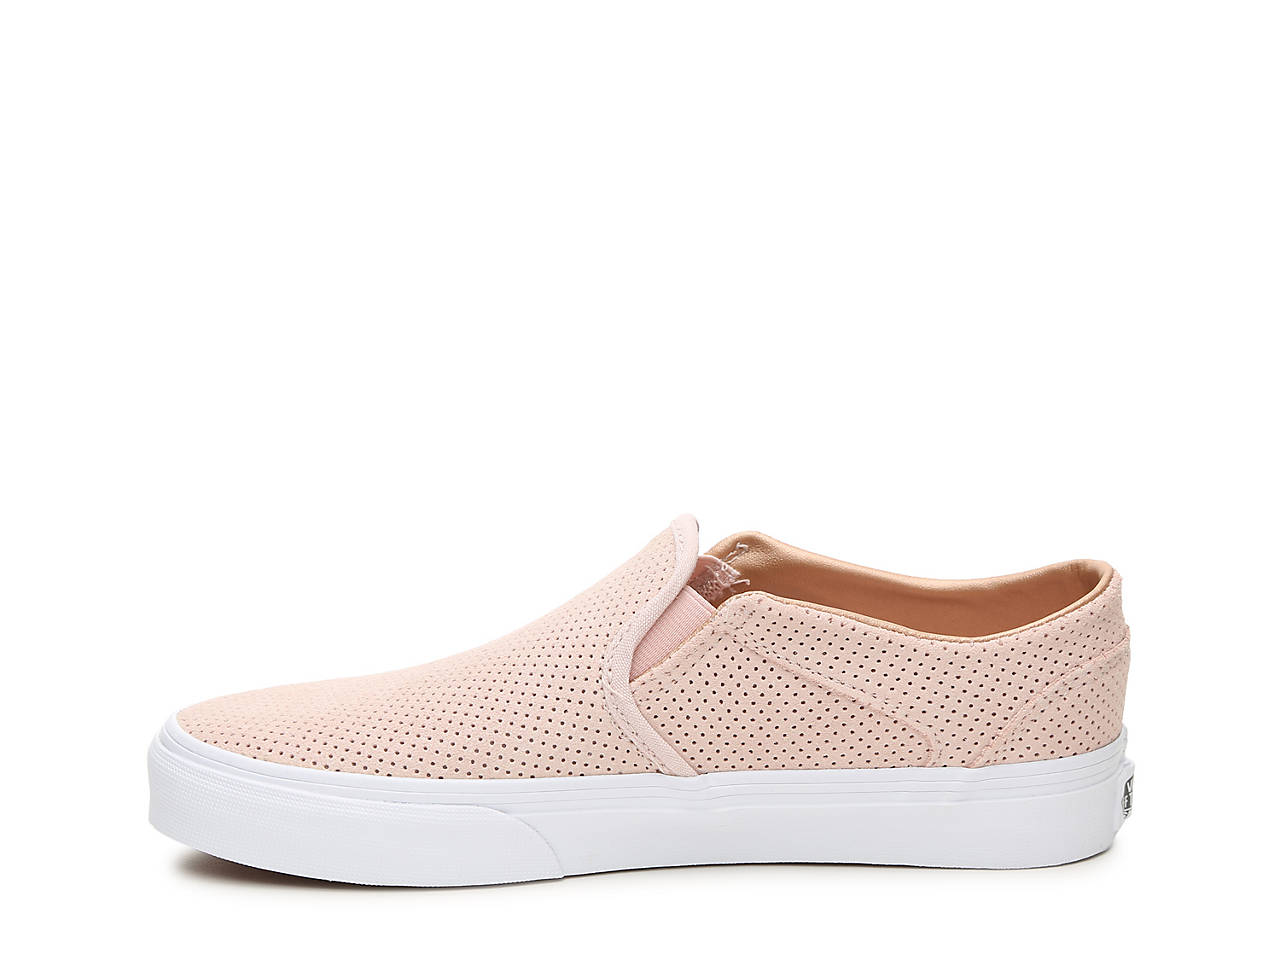 5d809d28859 Vans Asher Perforated Slip-On Sneaker - Women s Women s Shoes